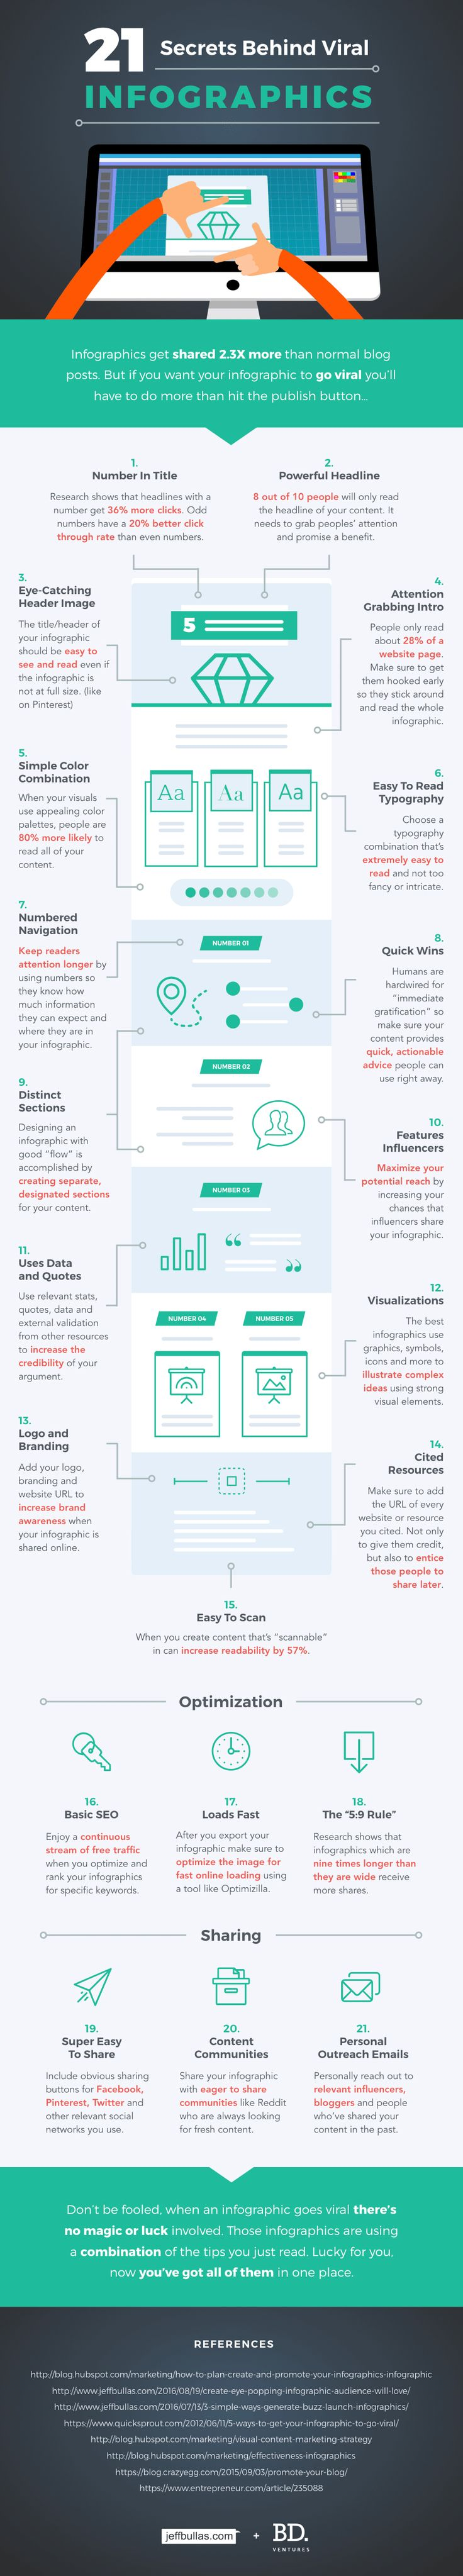 It's no secret that infographic marketing works. Here are 21 secrets behind viral infographics that grab attention and get your content shared like crazy